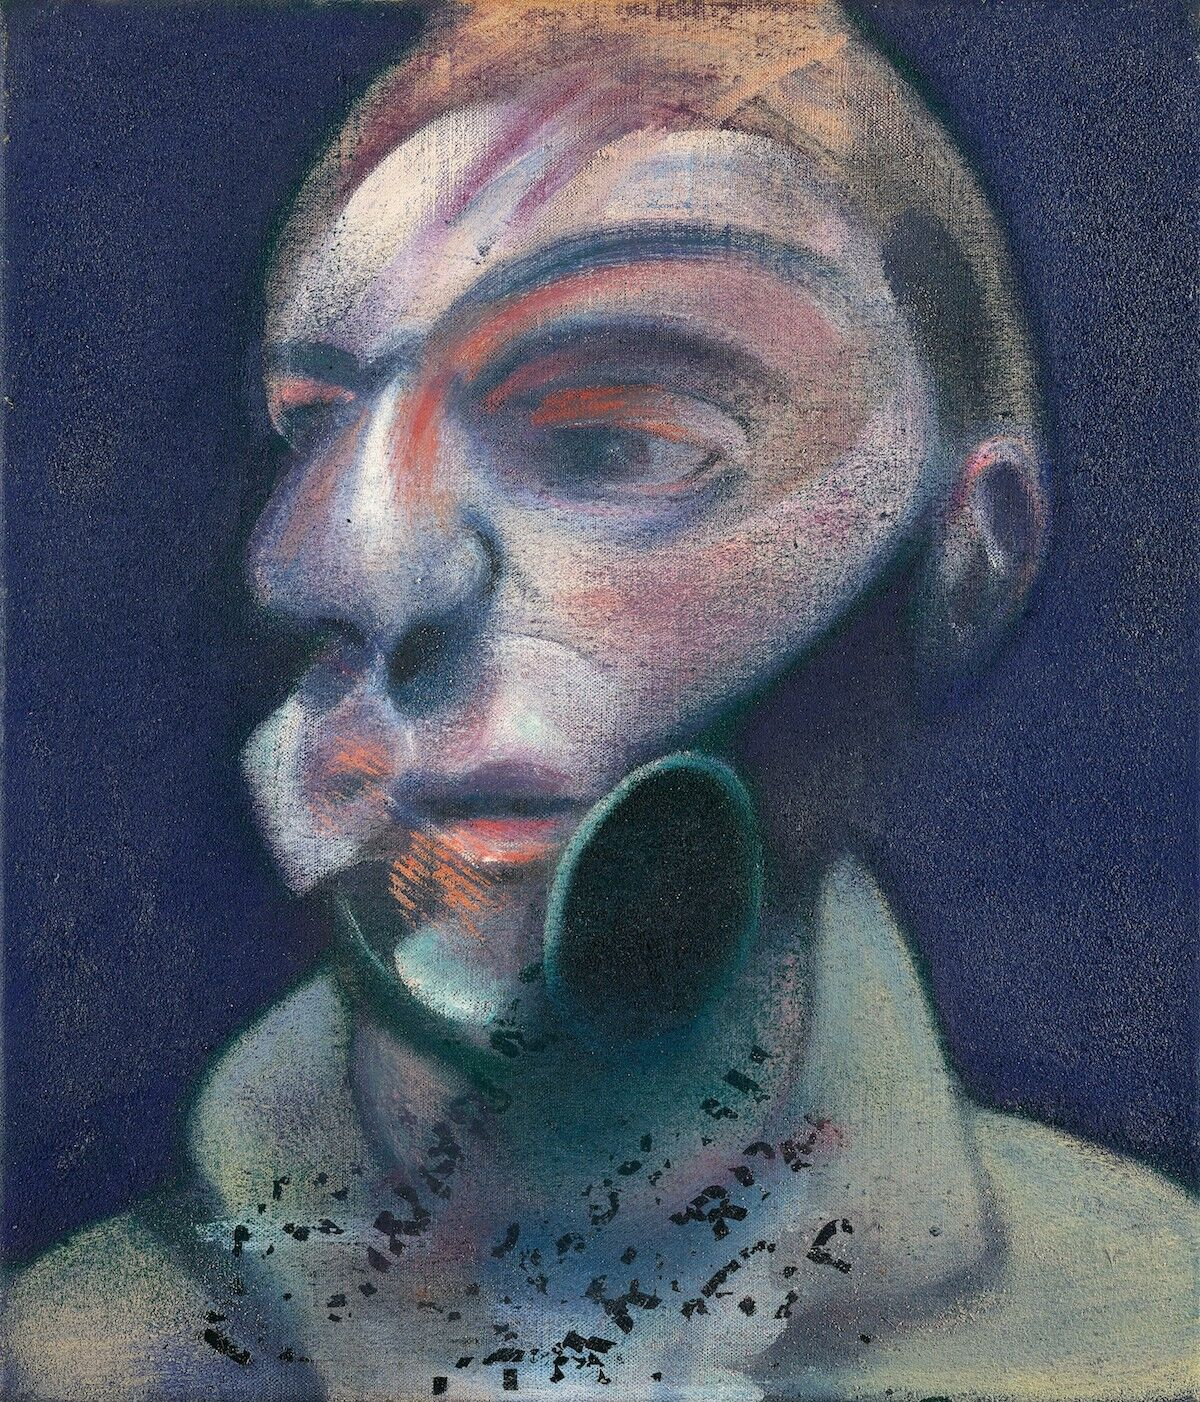 Francis Bacon, Self-Portrait, 1975. Courtesy Sotheby's.